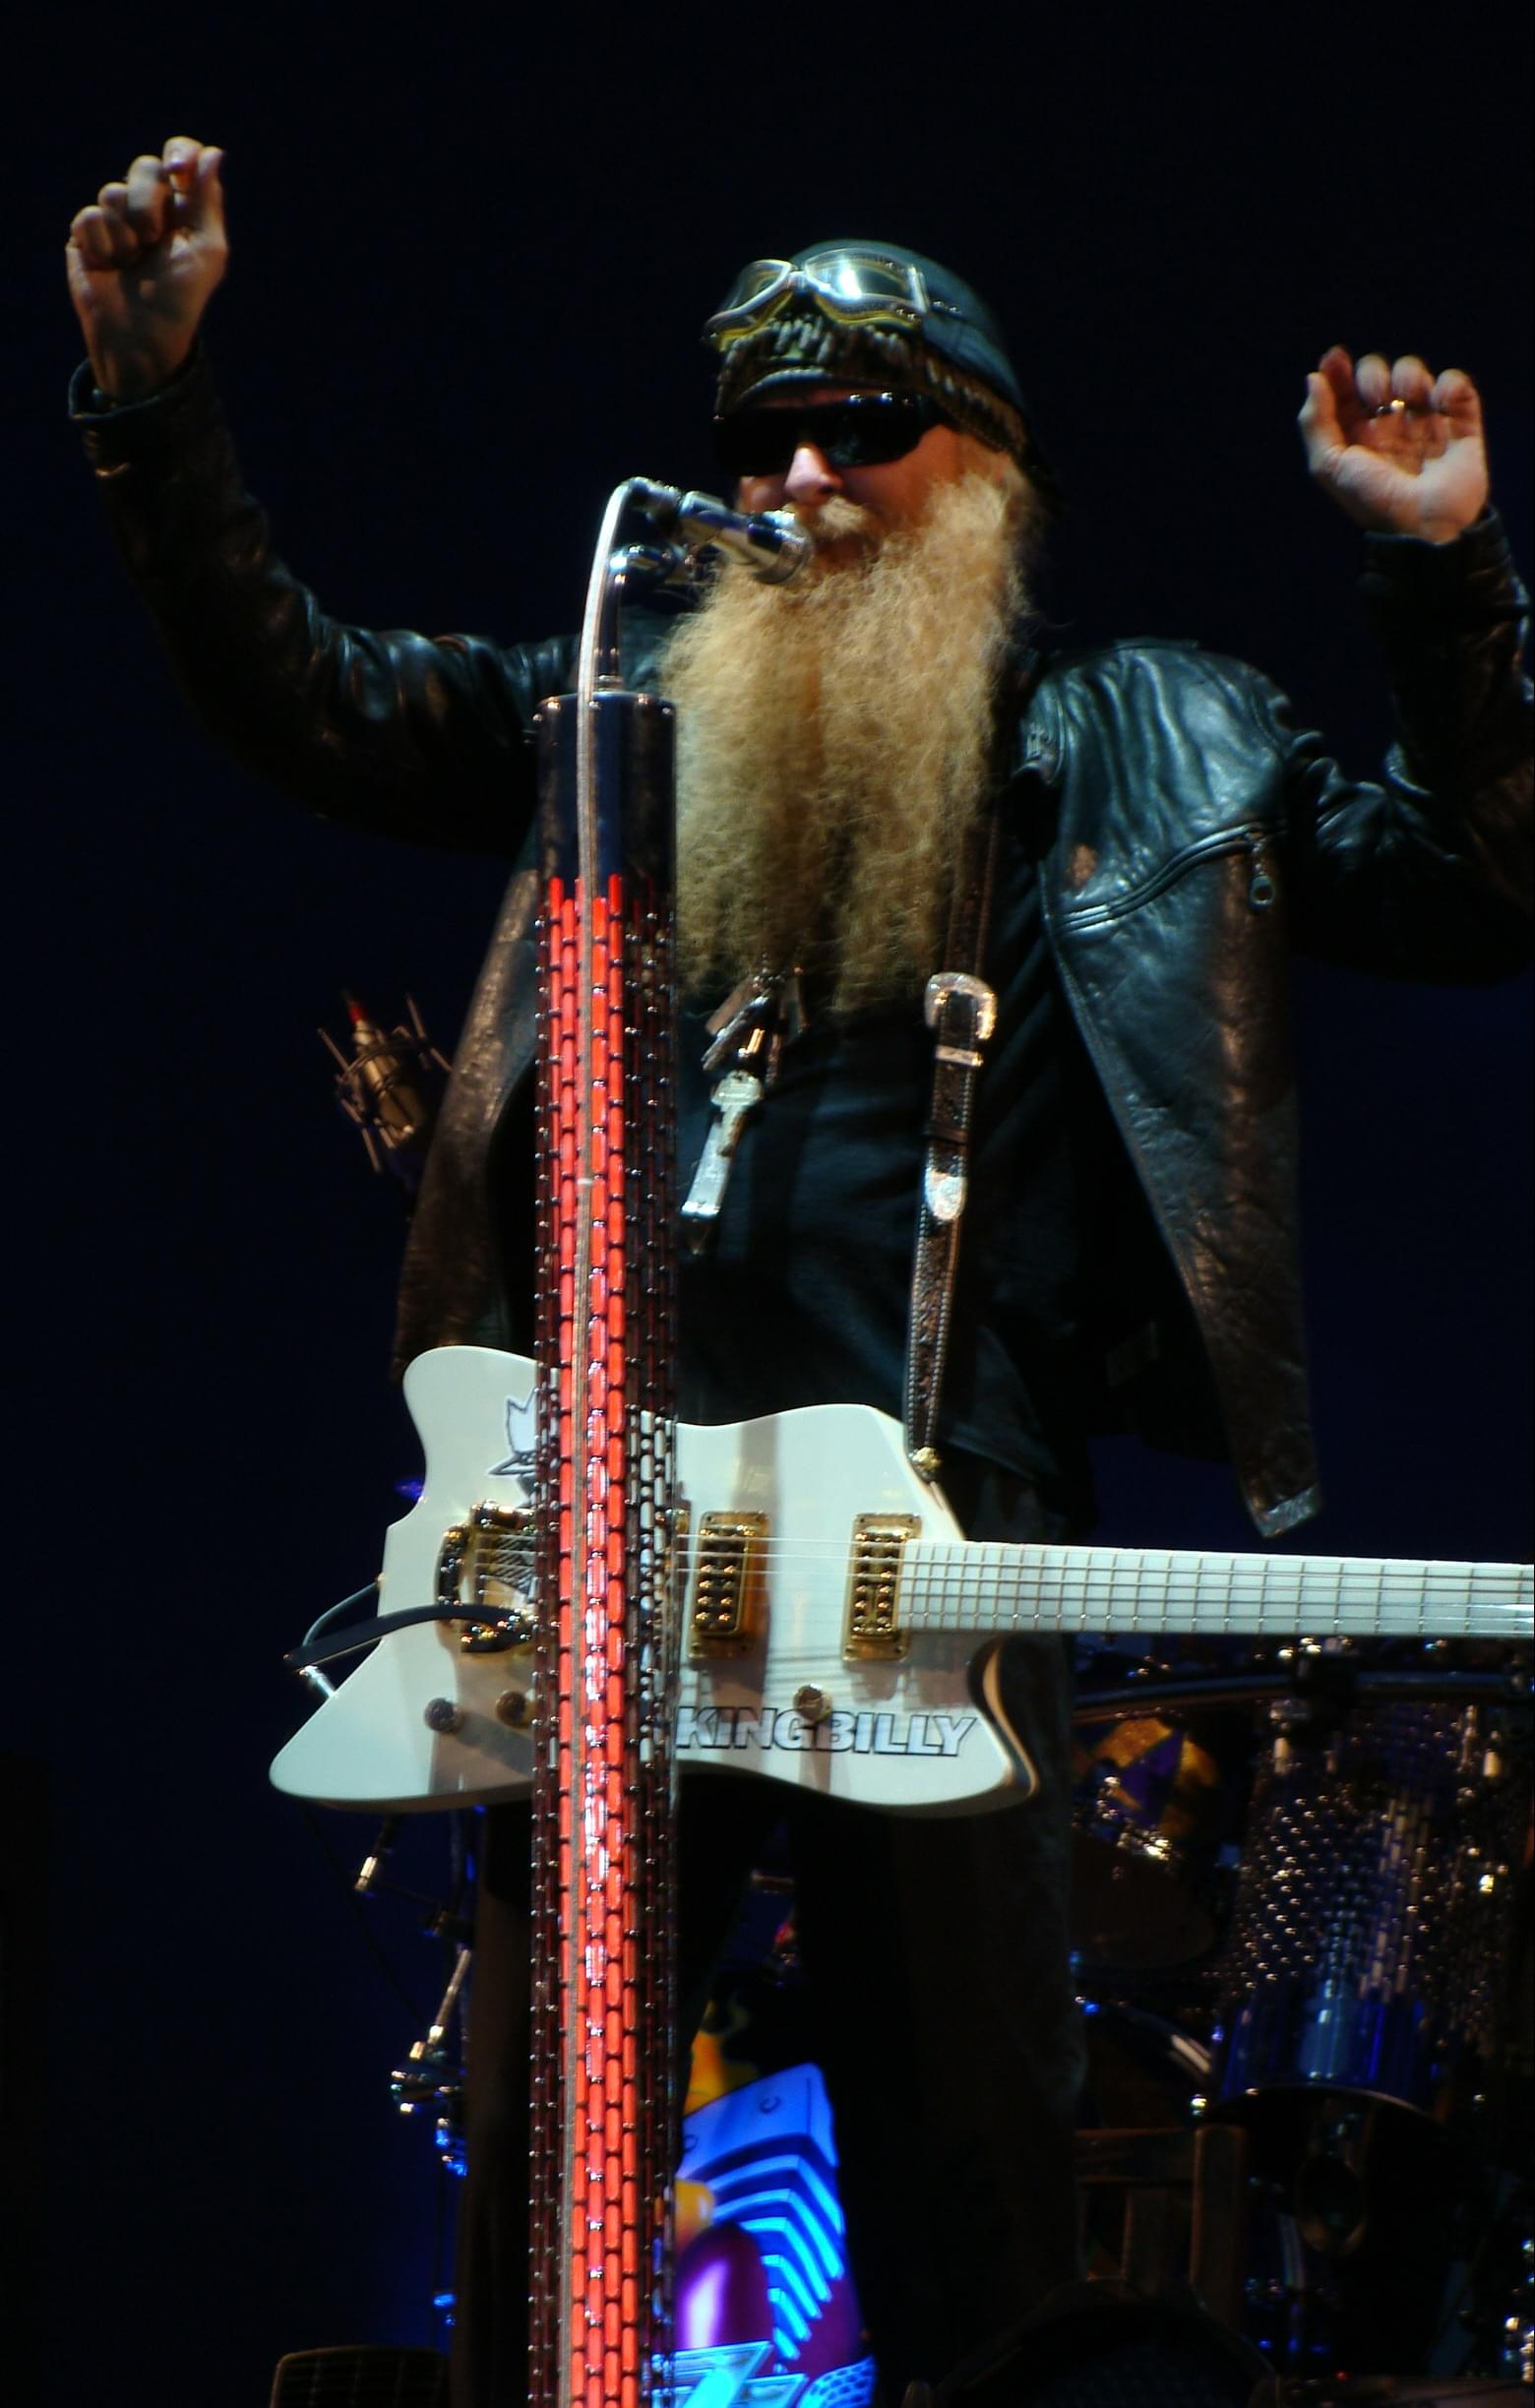 Billy_Gibbons_ZZ_Top_BBK_Live_2008_VI